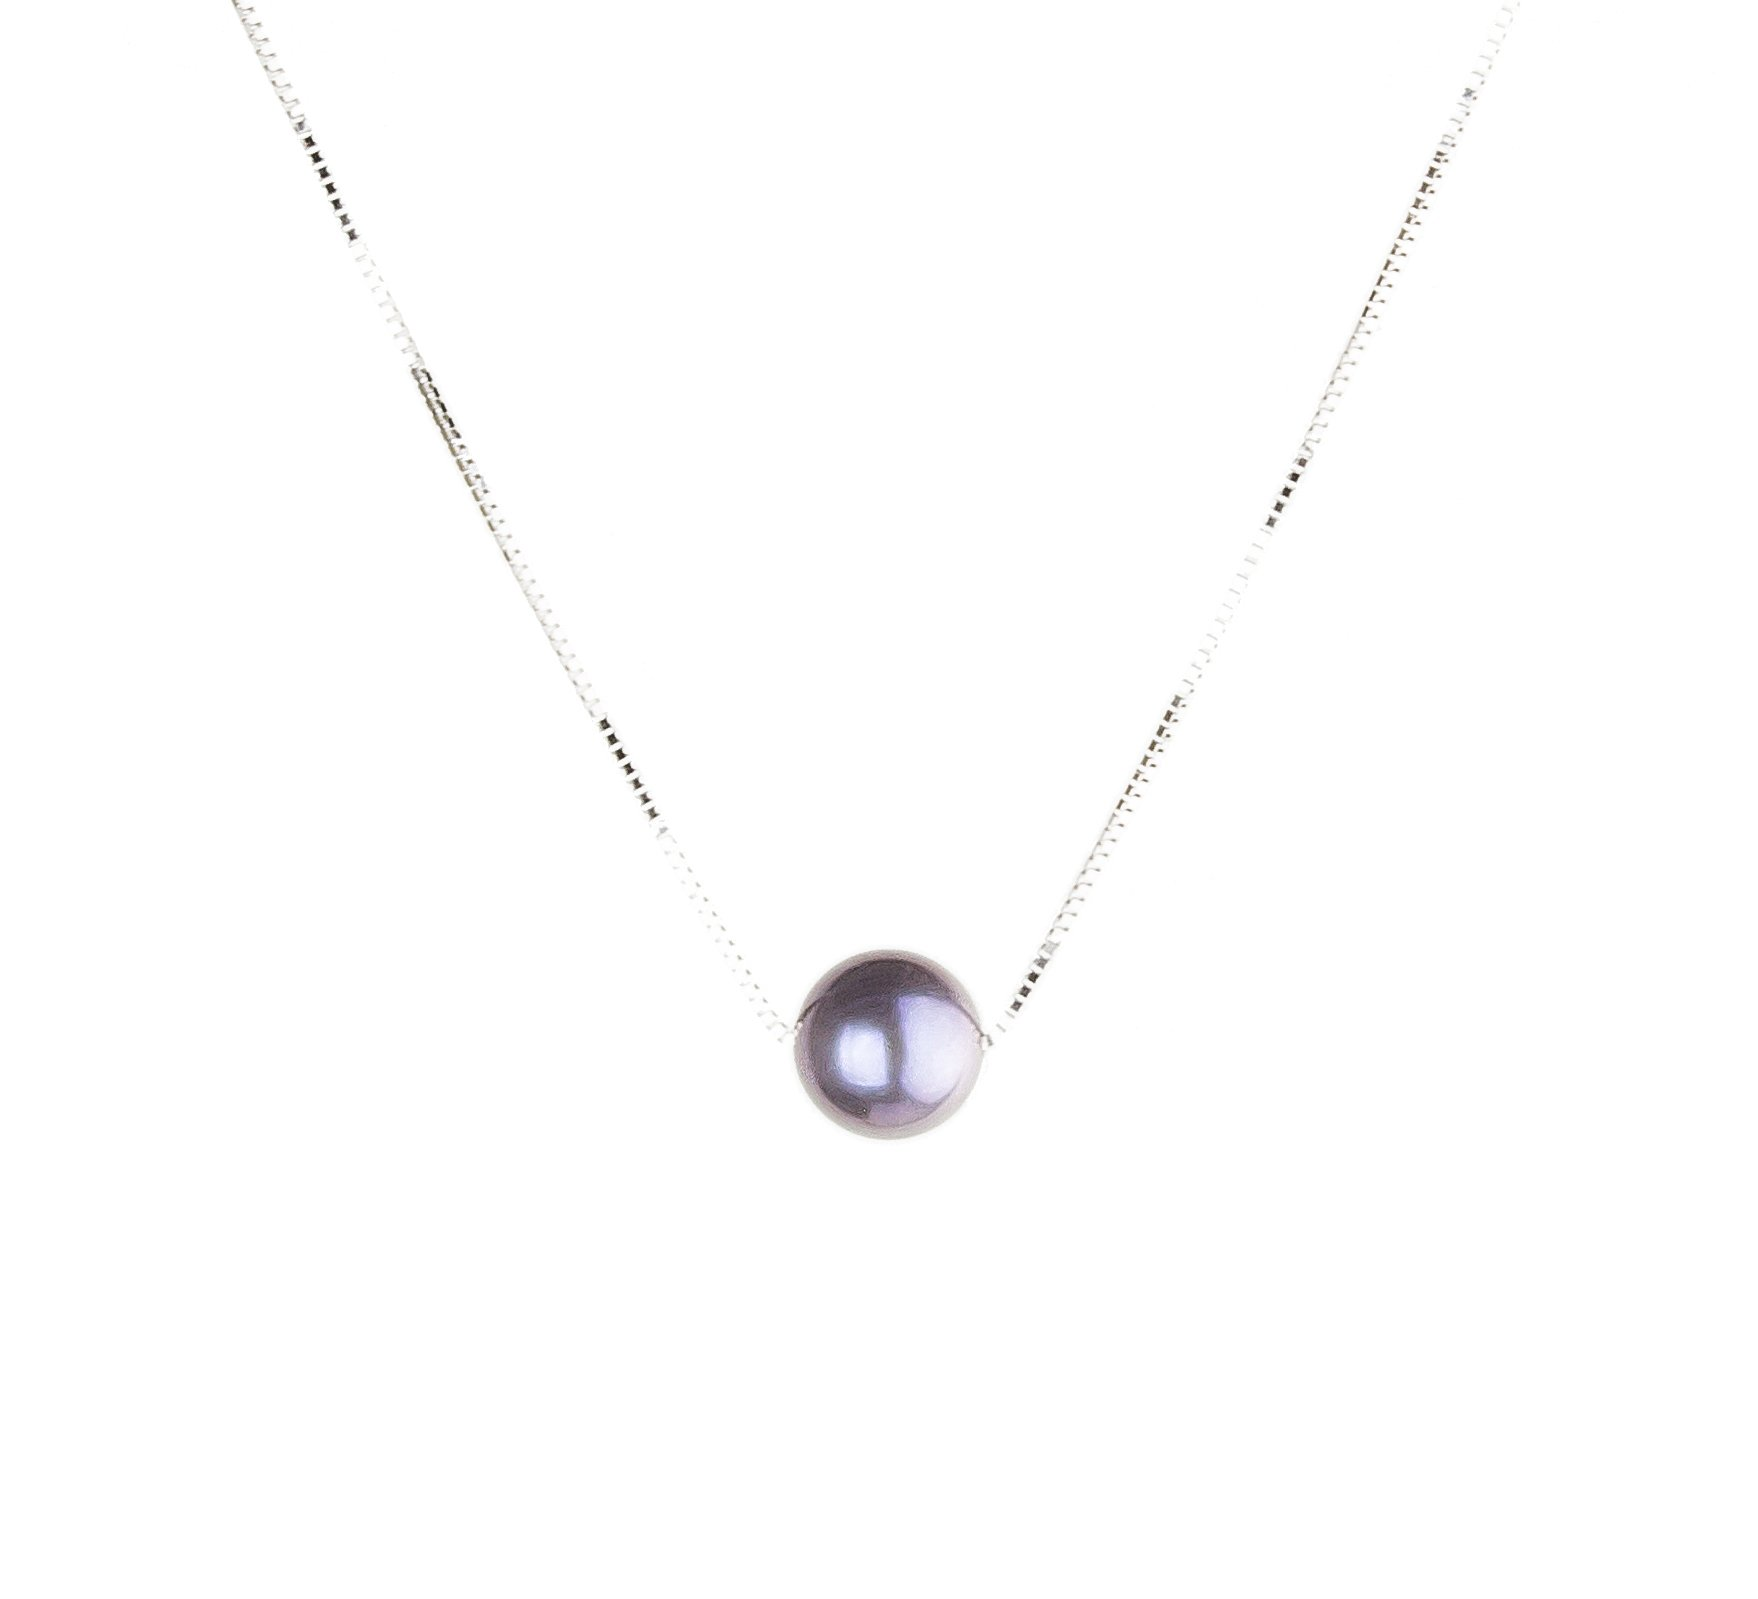 HinsonGayle AAA 10mm Black/Purple Round Freshwater Cultured Single Pearl Solitaire Necklace Silver-18 in length